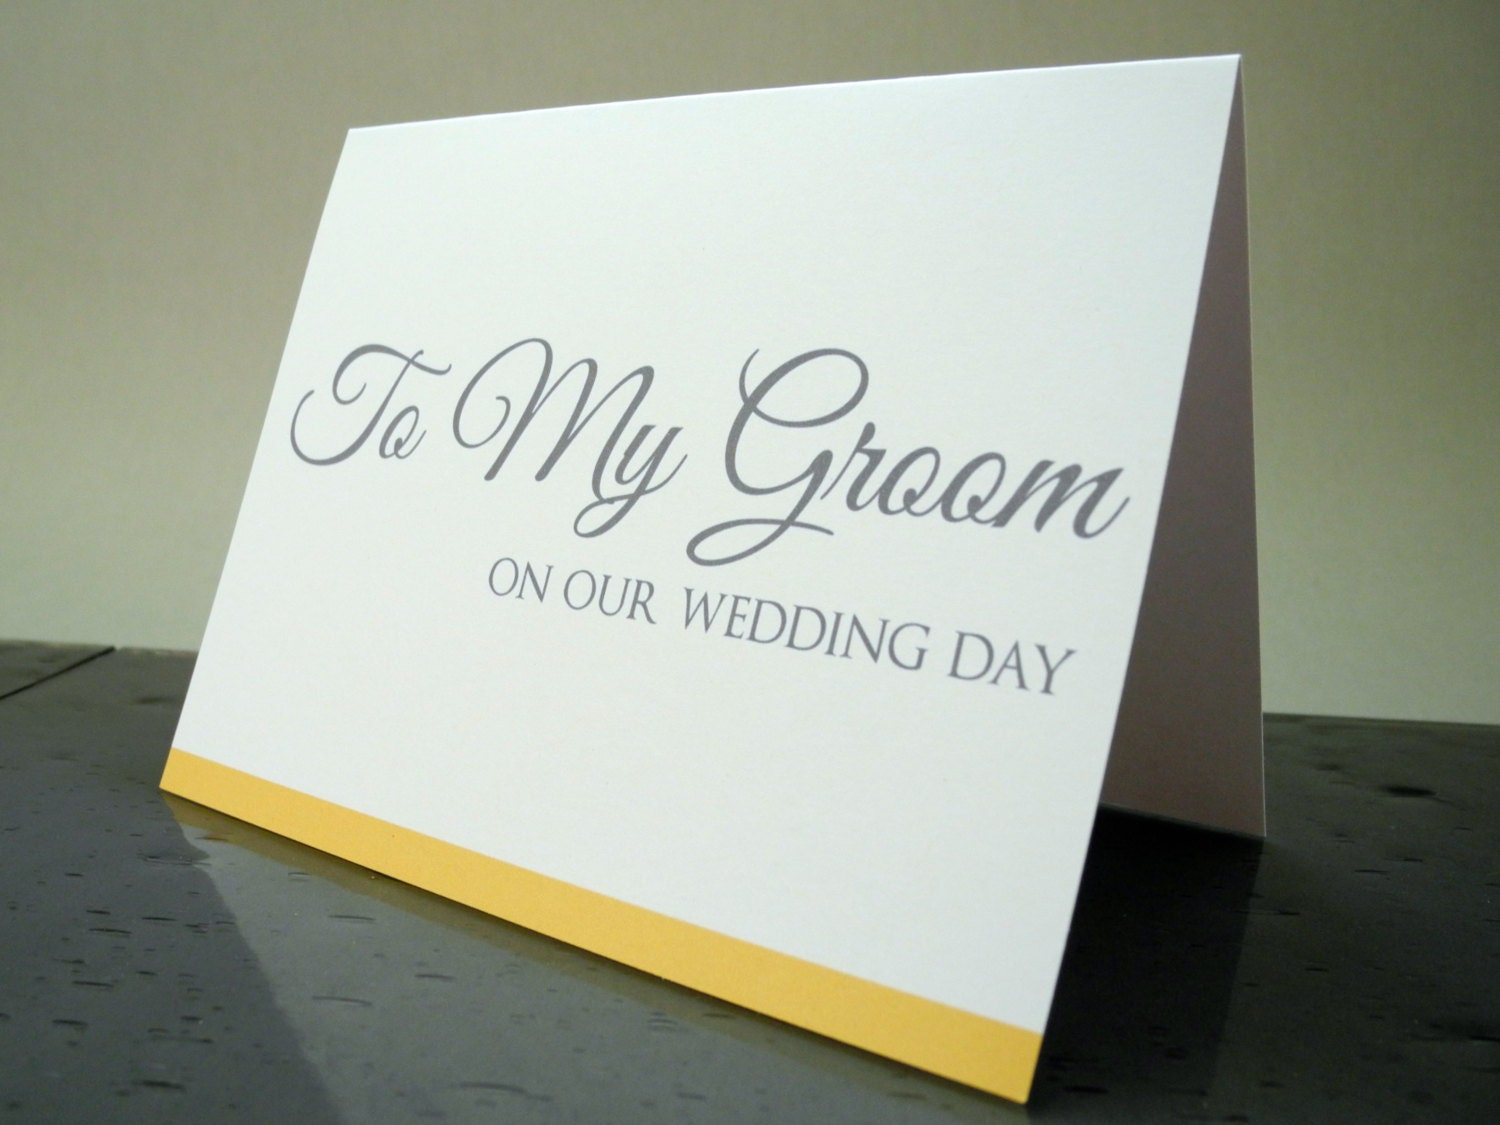 Gift Ideas For Groom On Wedding Day: Groom Gift To My Groom On Our Wedding Day Card Gift From